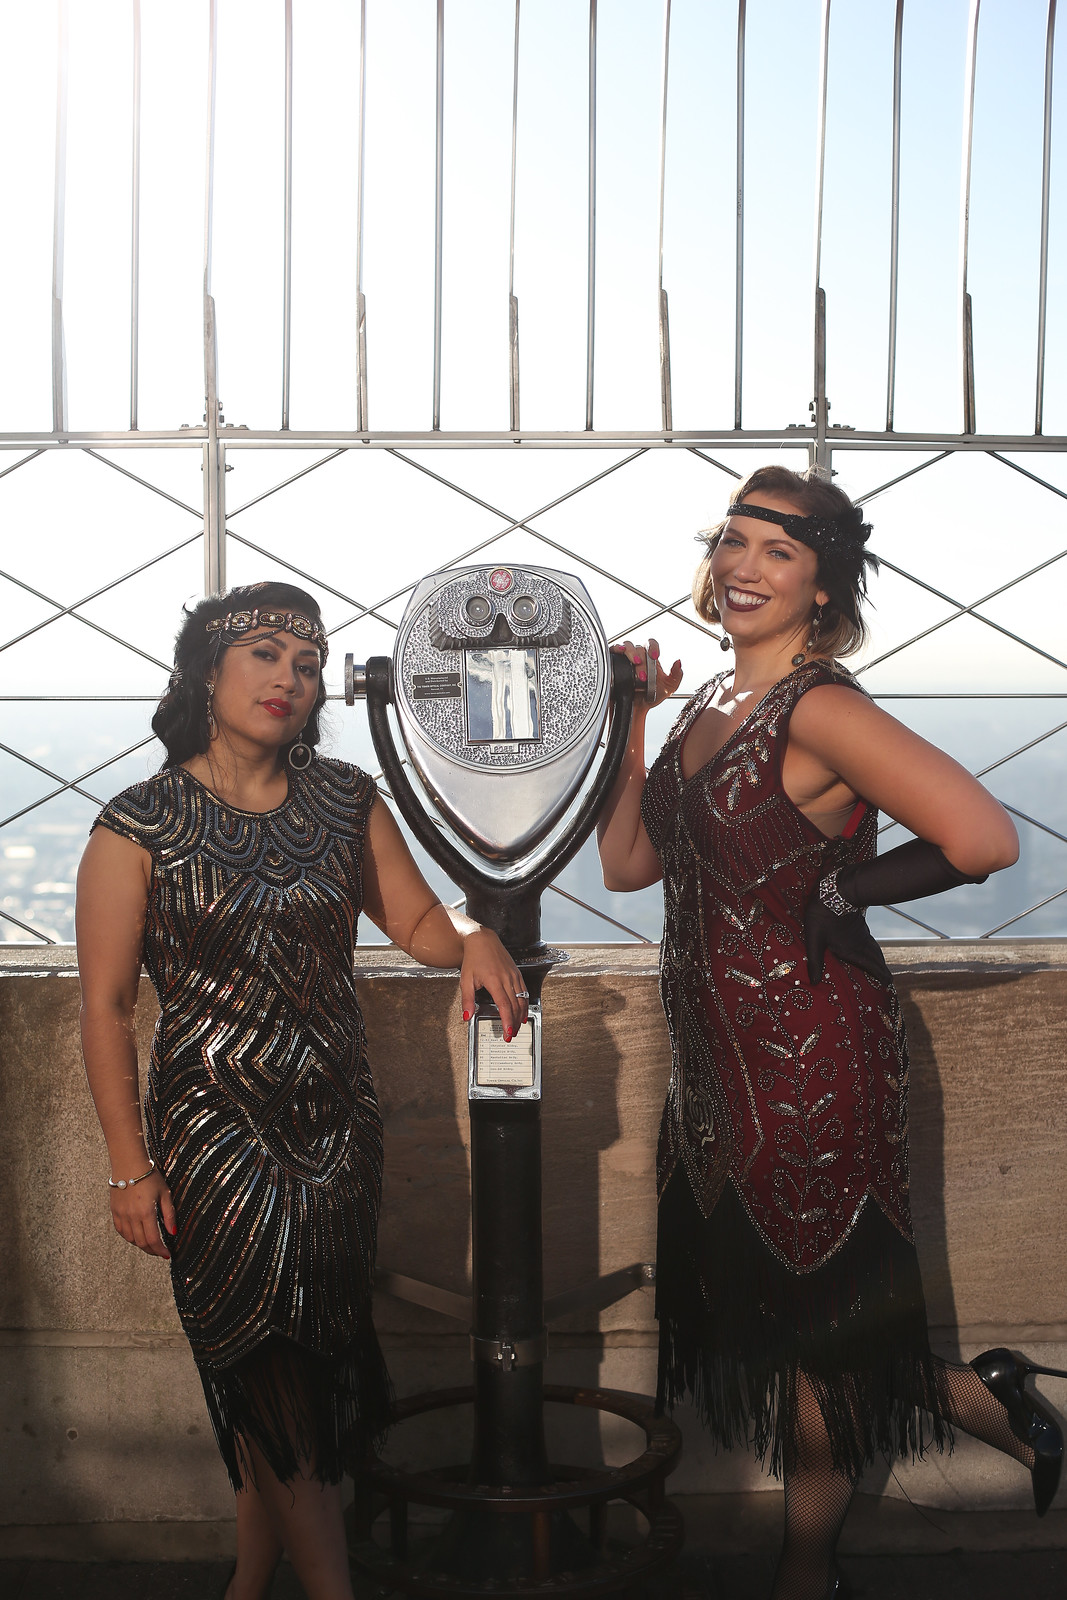 Great Gatsby Roaring Twenties 20s Halloween Costumes | Group Costumes | Fancy Party Costumes | Glam Halloween | Amazon Prime Flapper Dresses | Top Empire State Building Sunrise